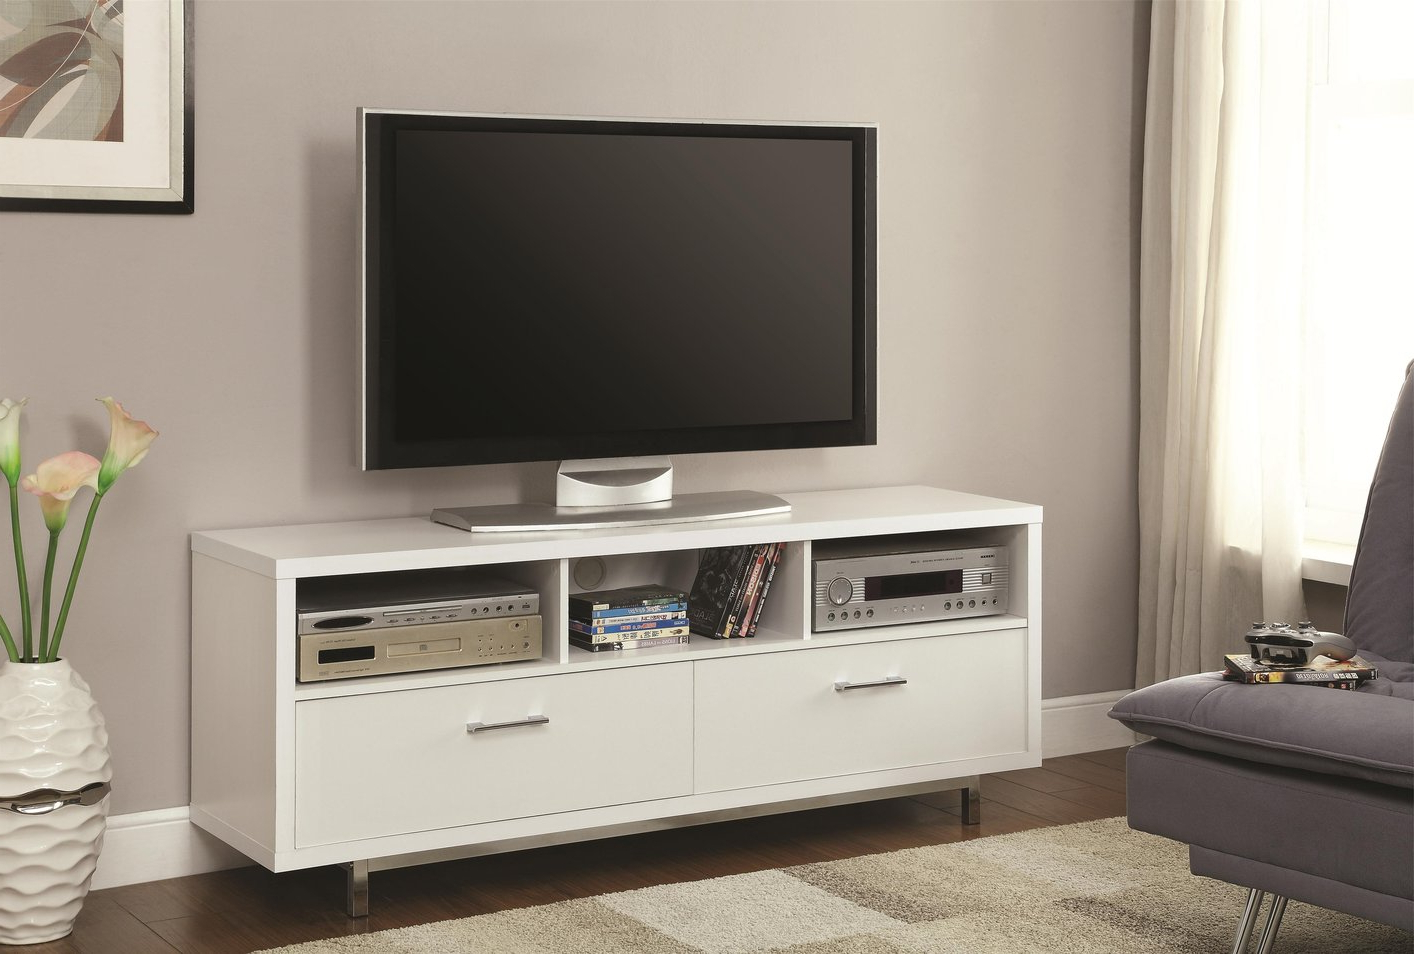 White Wood Tv Stand – Steal A Sofa Furniture Outlet Los Angeles Ca Throughout Well Liked White And Wood Tv Stands (View 19 of 20)